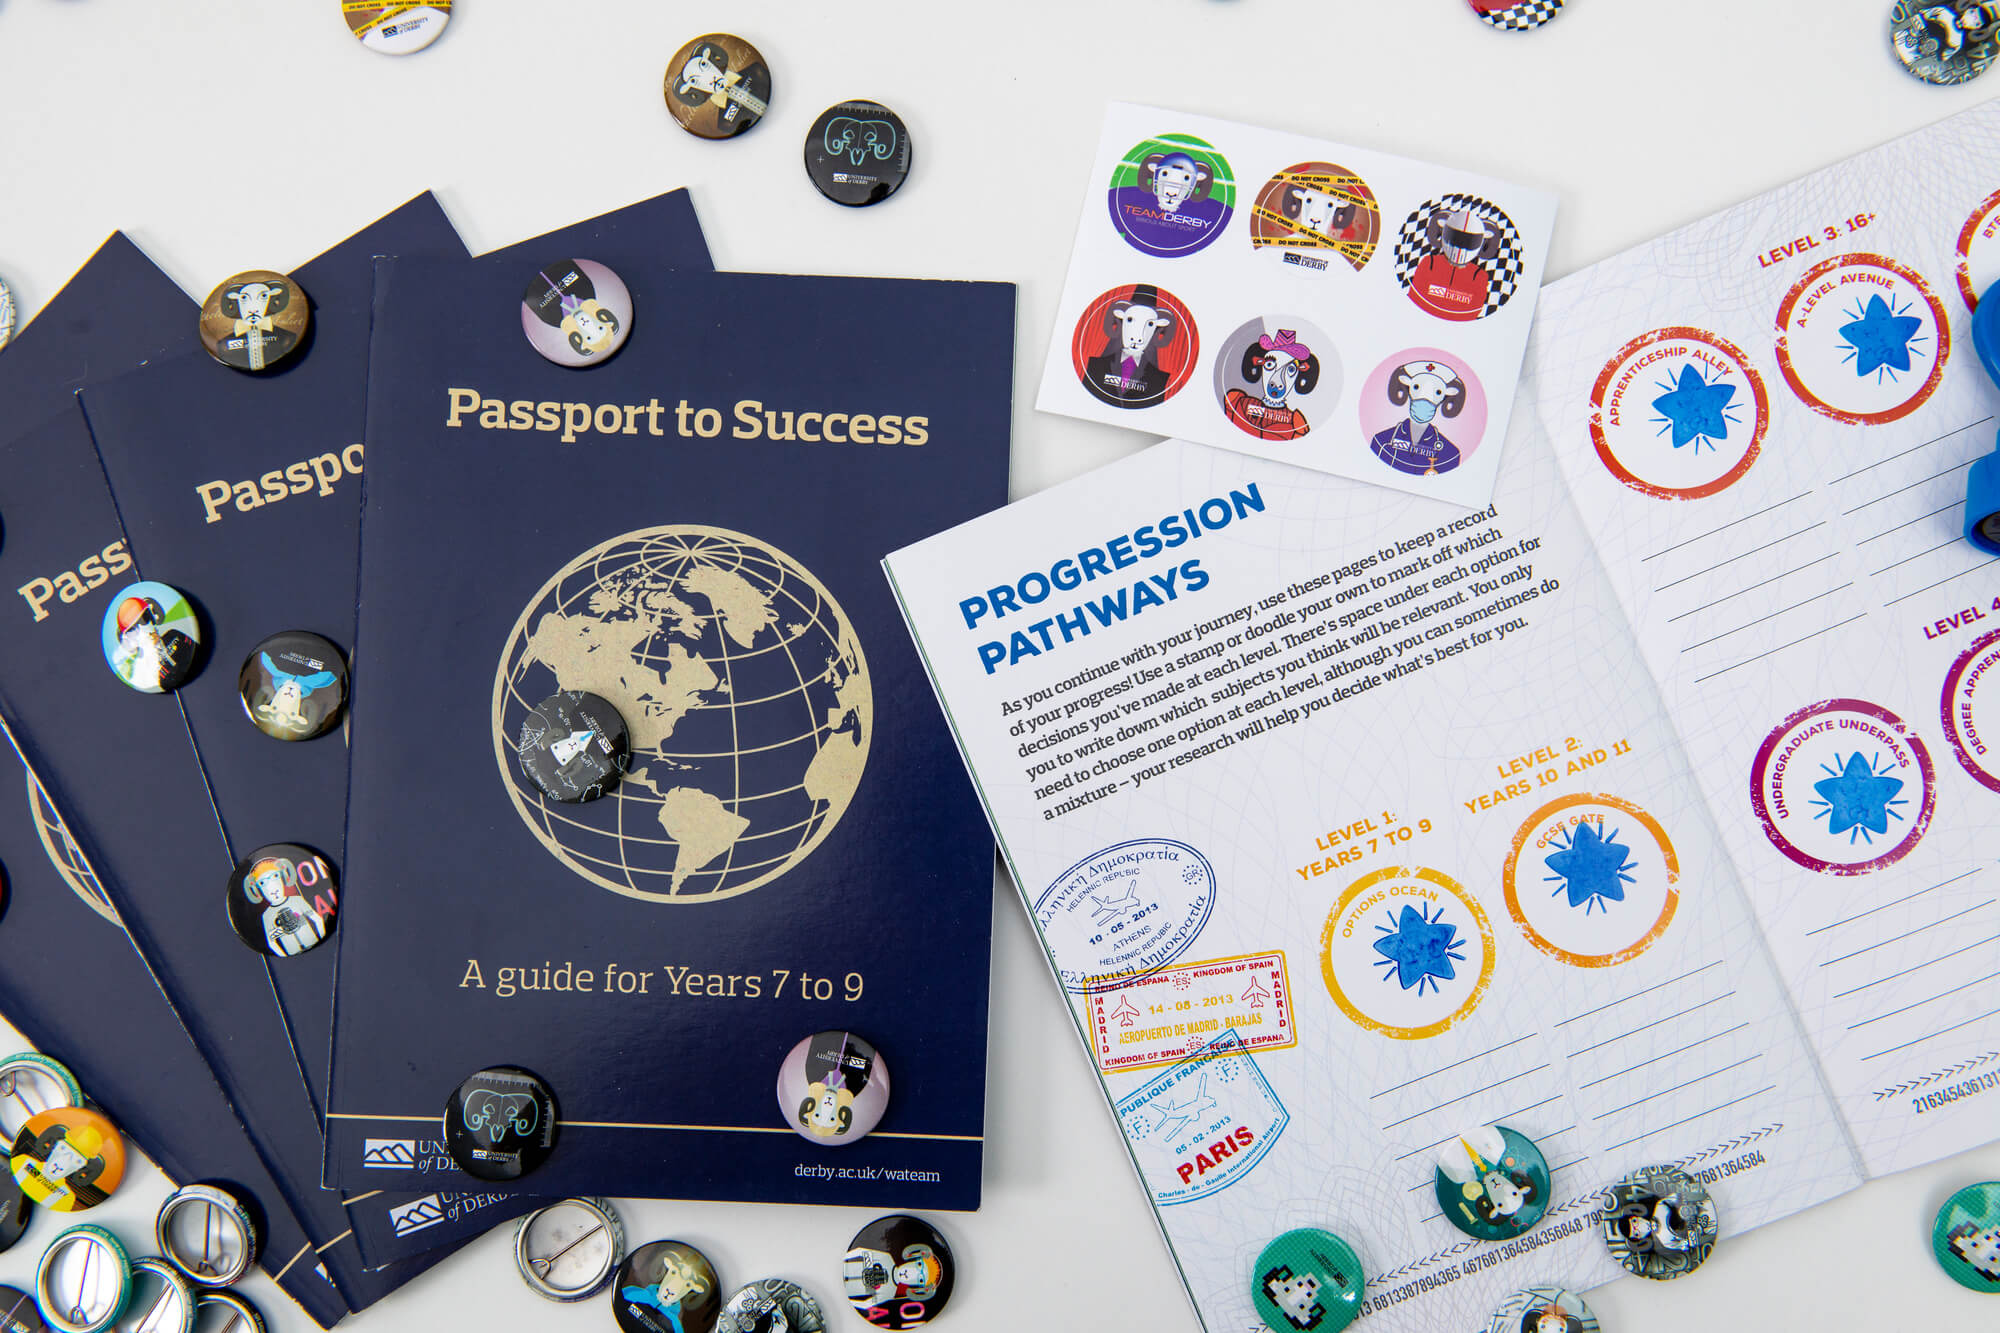 An open progression pathways booklet on a table surrounded by badges